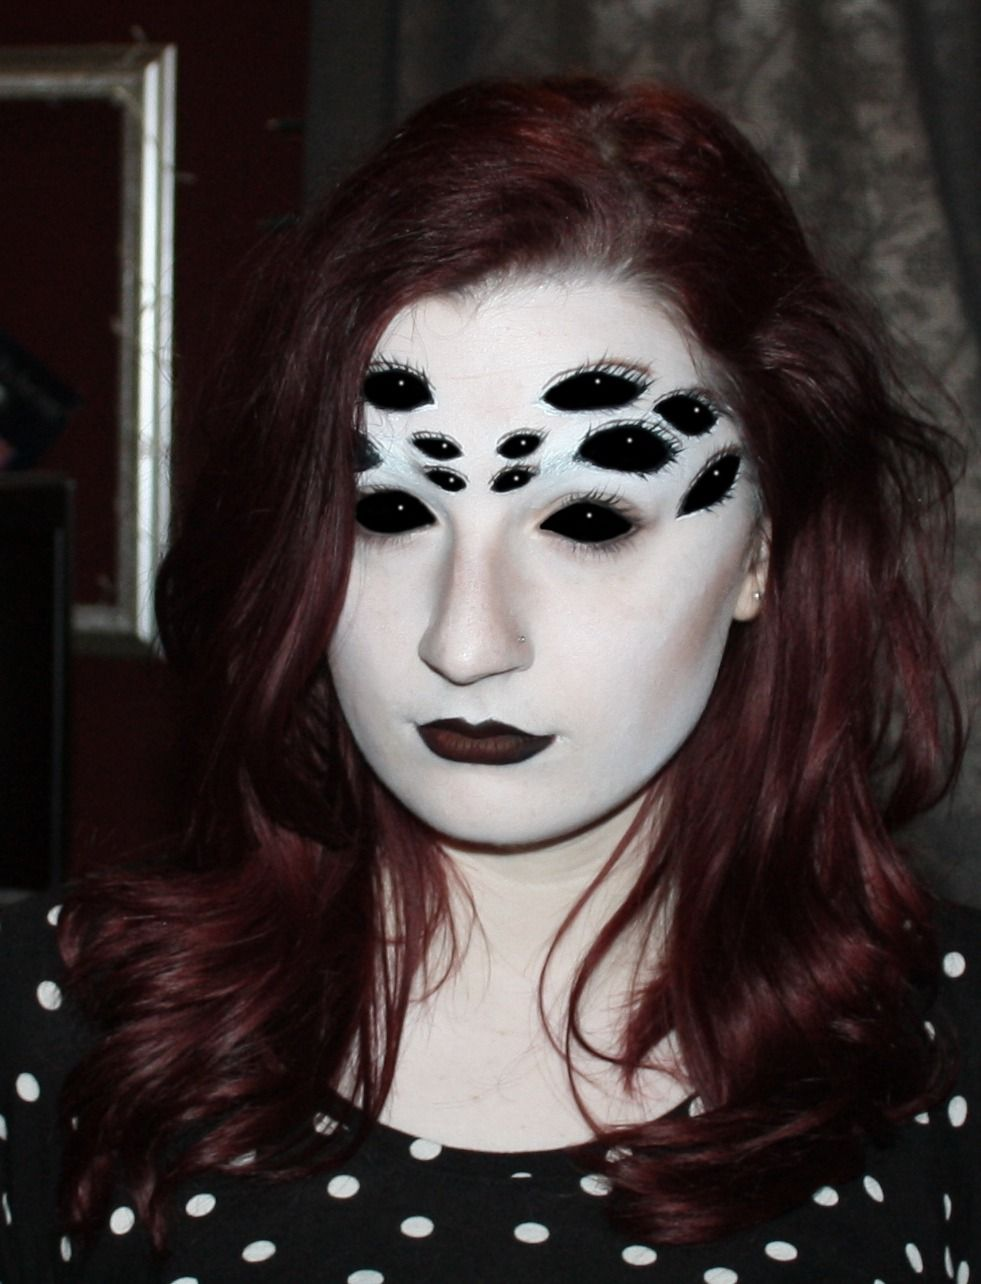 Creepy Spider Eyes Make-up Design perfect for Halloween ...